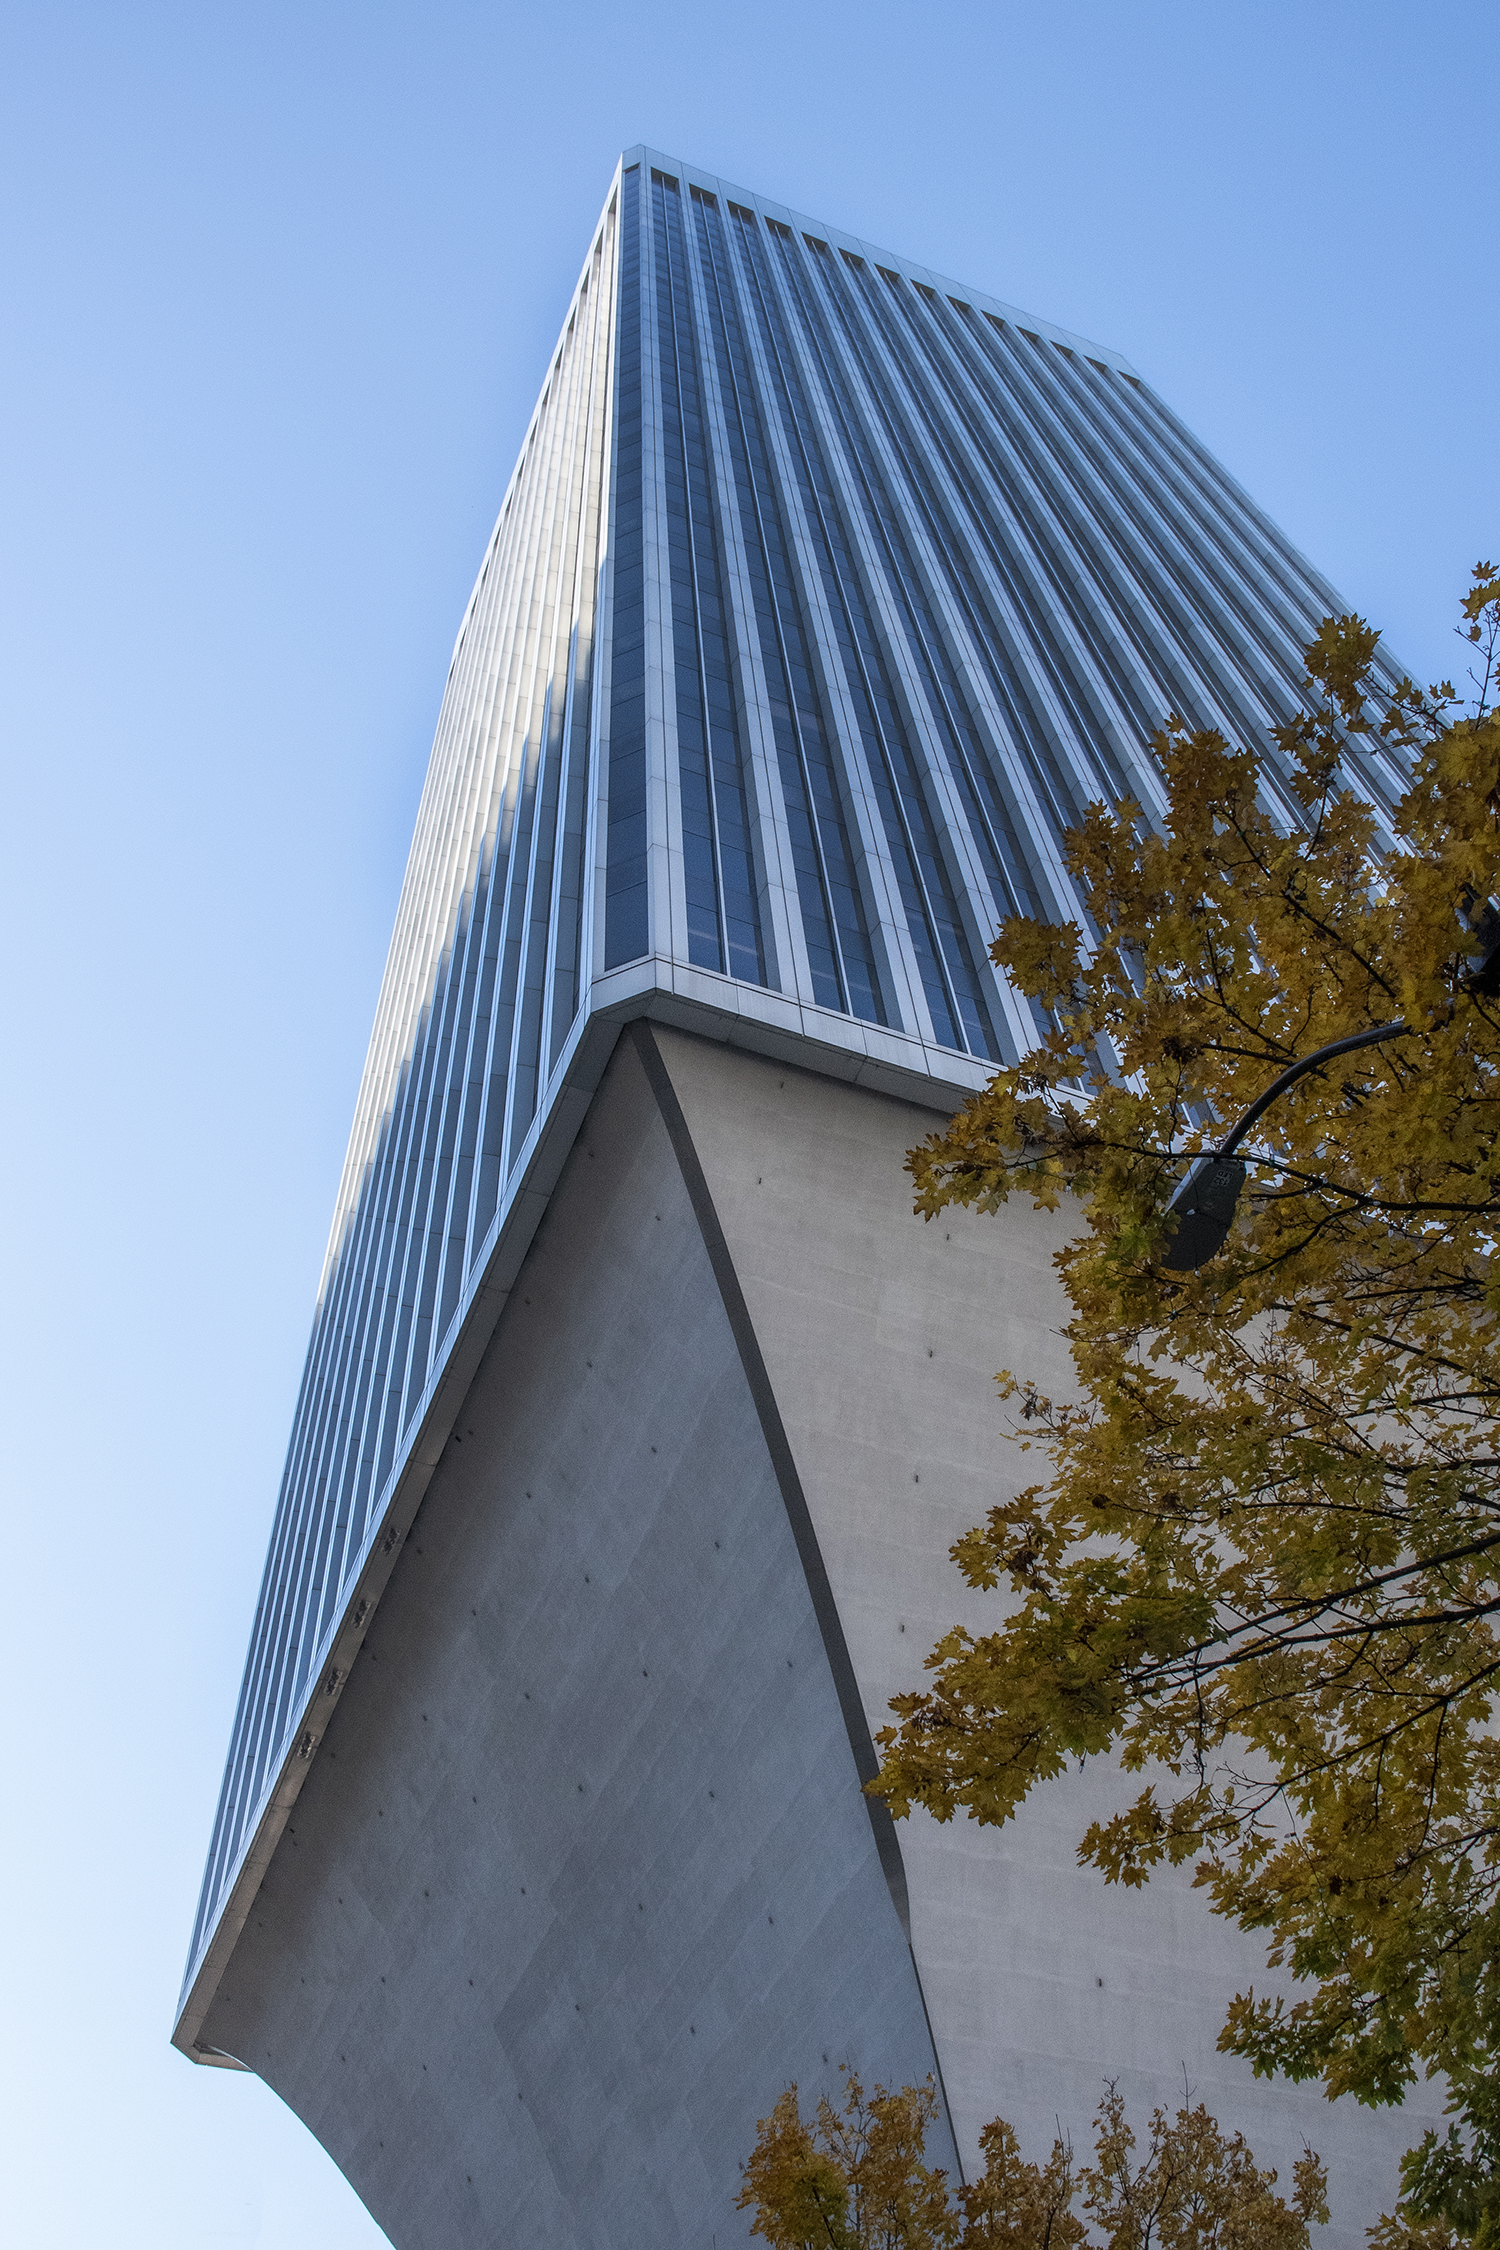 Take a stroll along 5th Avenue downtown and ponder the unique, anxiety-inducing construction of the Rainier Tower. Built in 1977, the 41-story skyscraper's upward flair was actually designed by Japanese-American architect, Minoru Yamasaki — the designer of the World Trade Center in New York City. (Image: Rachael Jones / Seattle Refined)